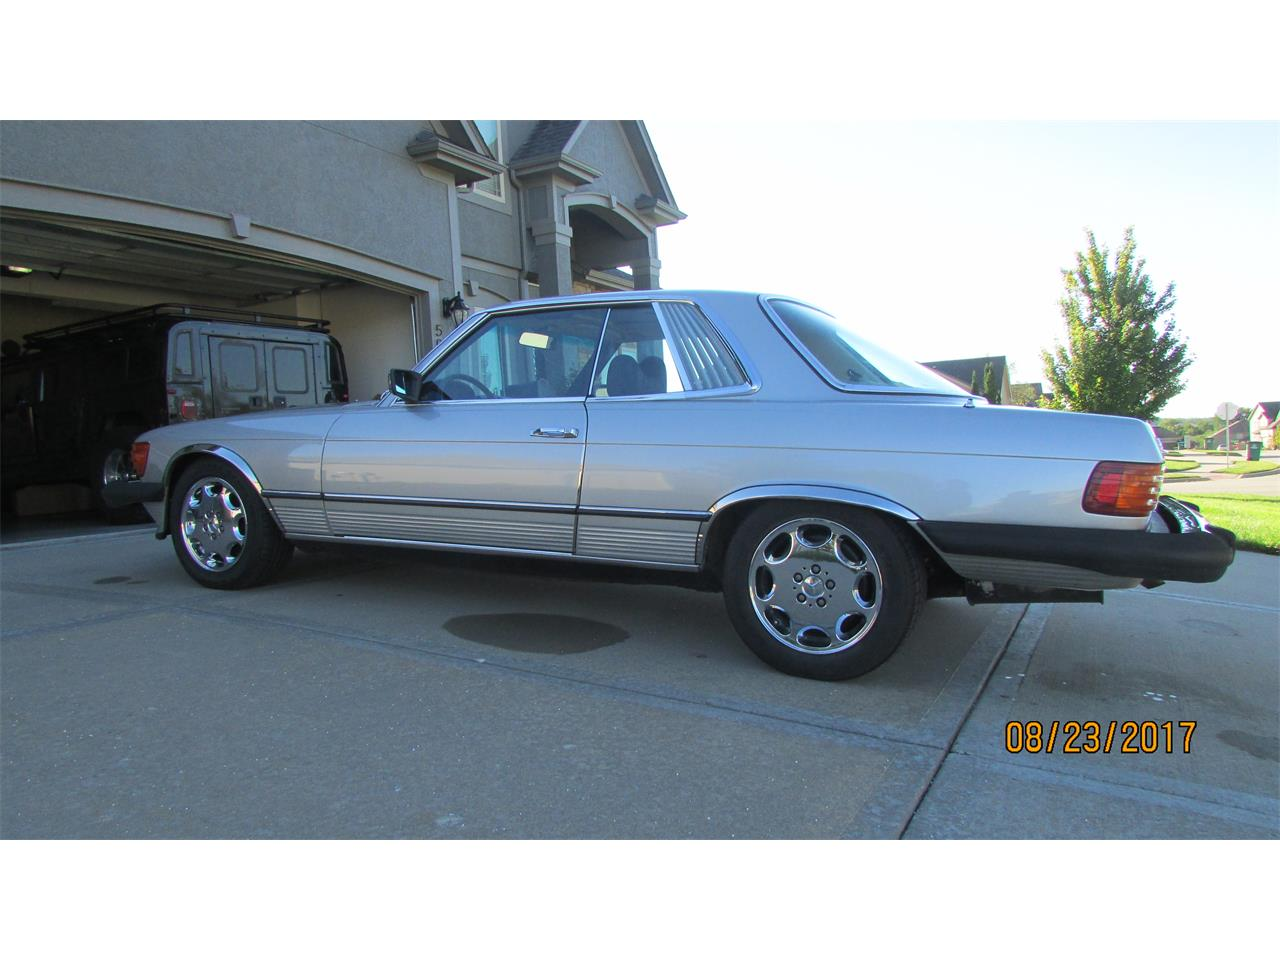 Large Picture of '79 SL-Class located in Missouri - $16,900.00 Offered by a Private Seller - M6OQ